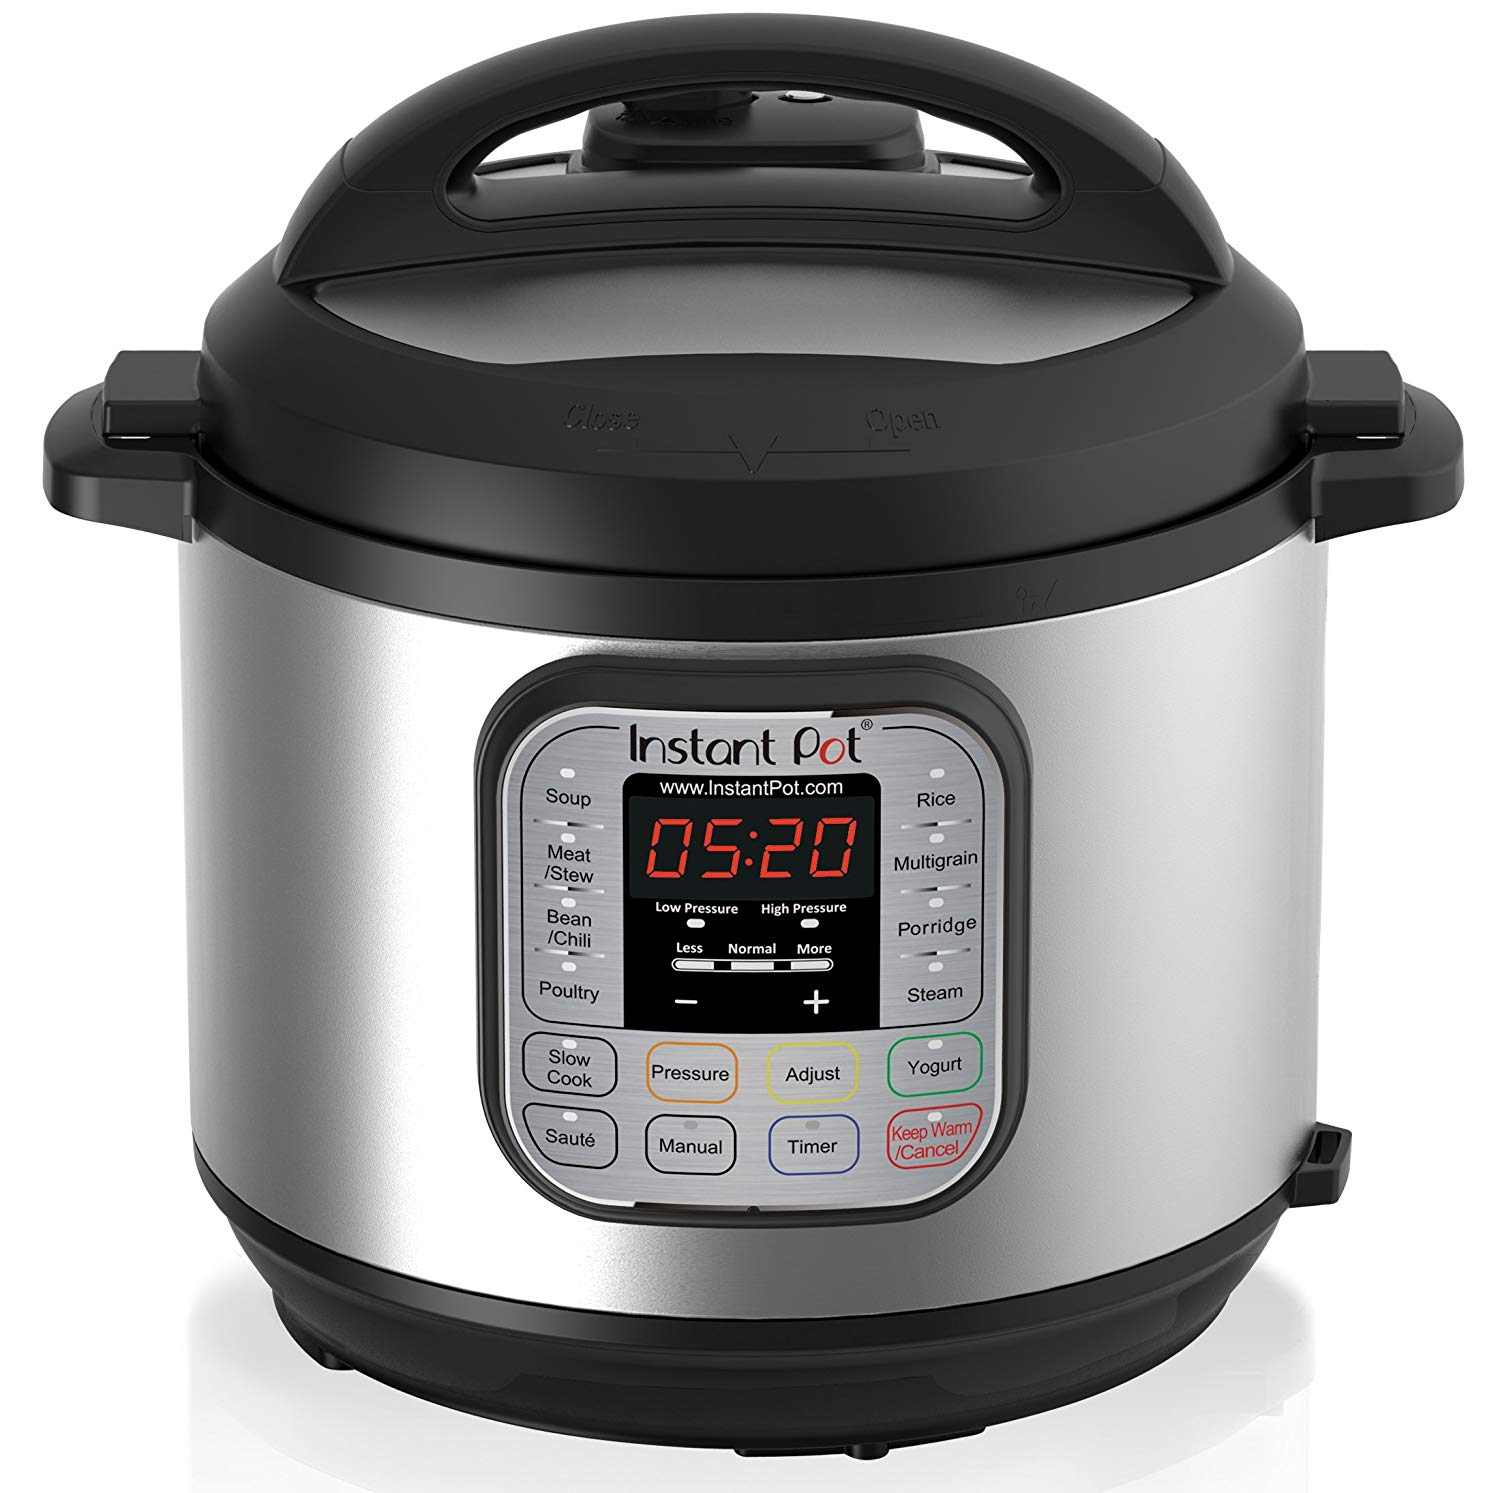 nstant Pot DUO60 6 Qt 7-in-1 Multi-Use Programmable Pressure Cooker